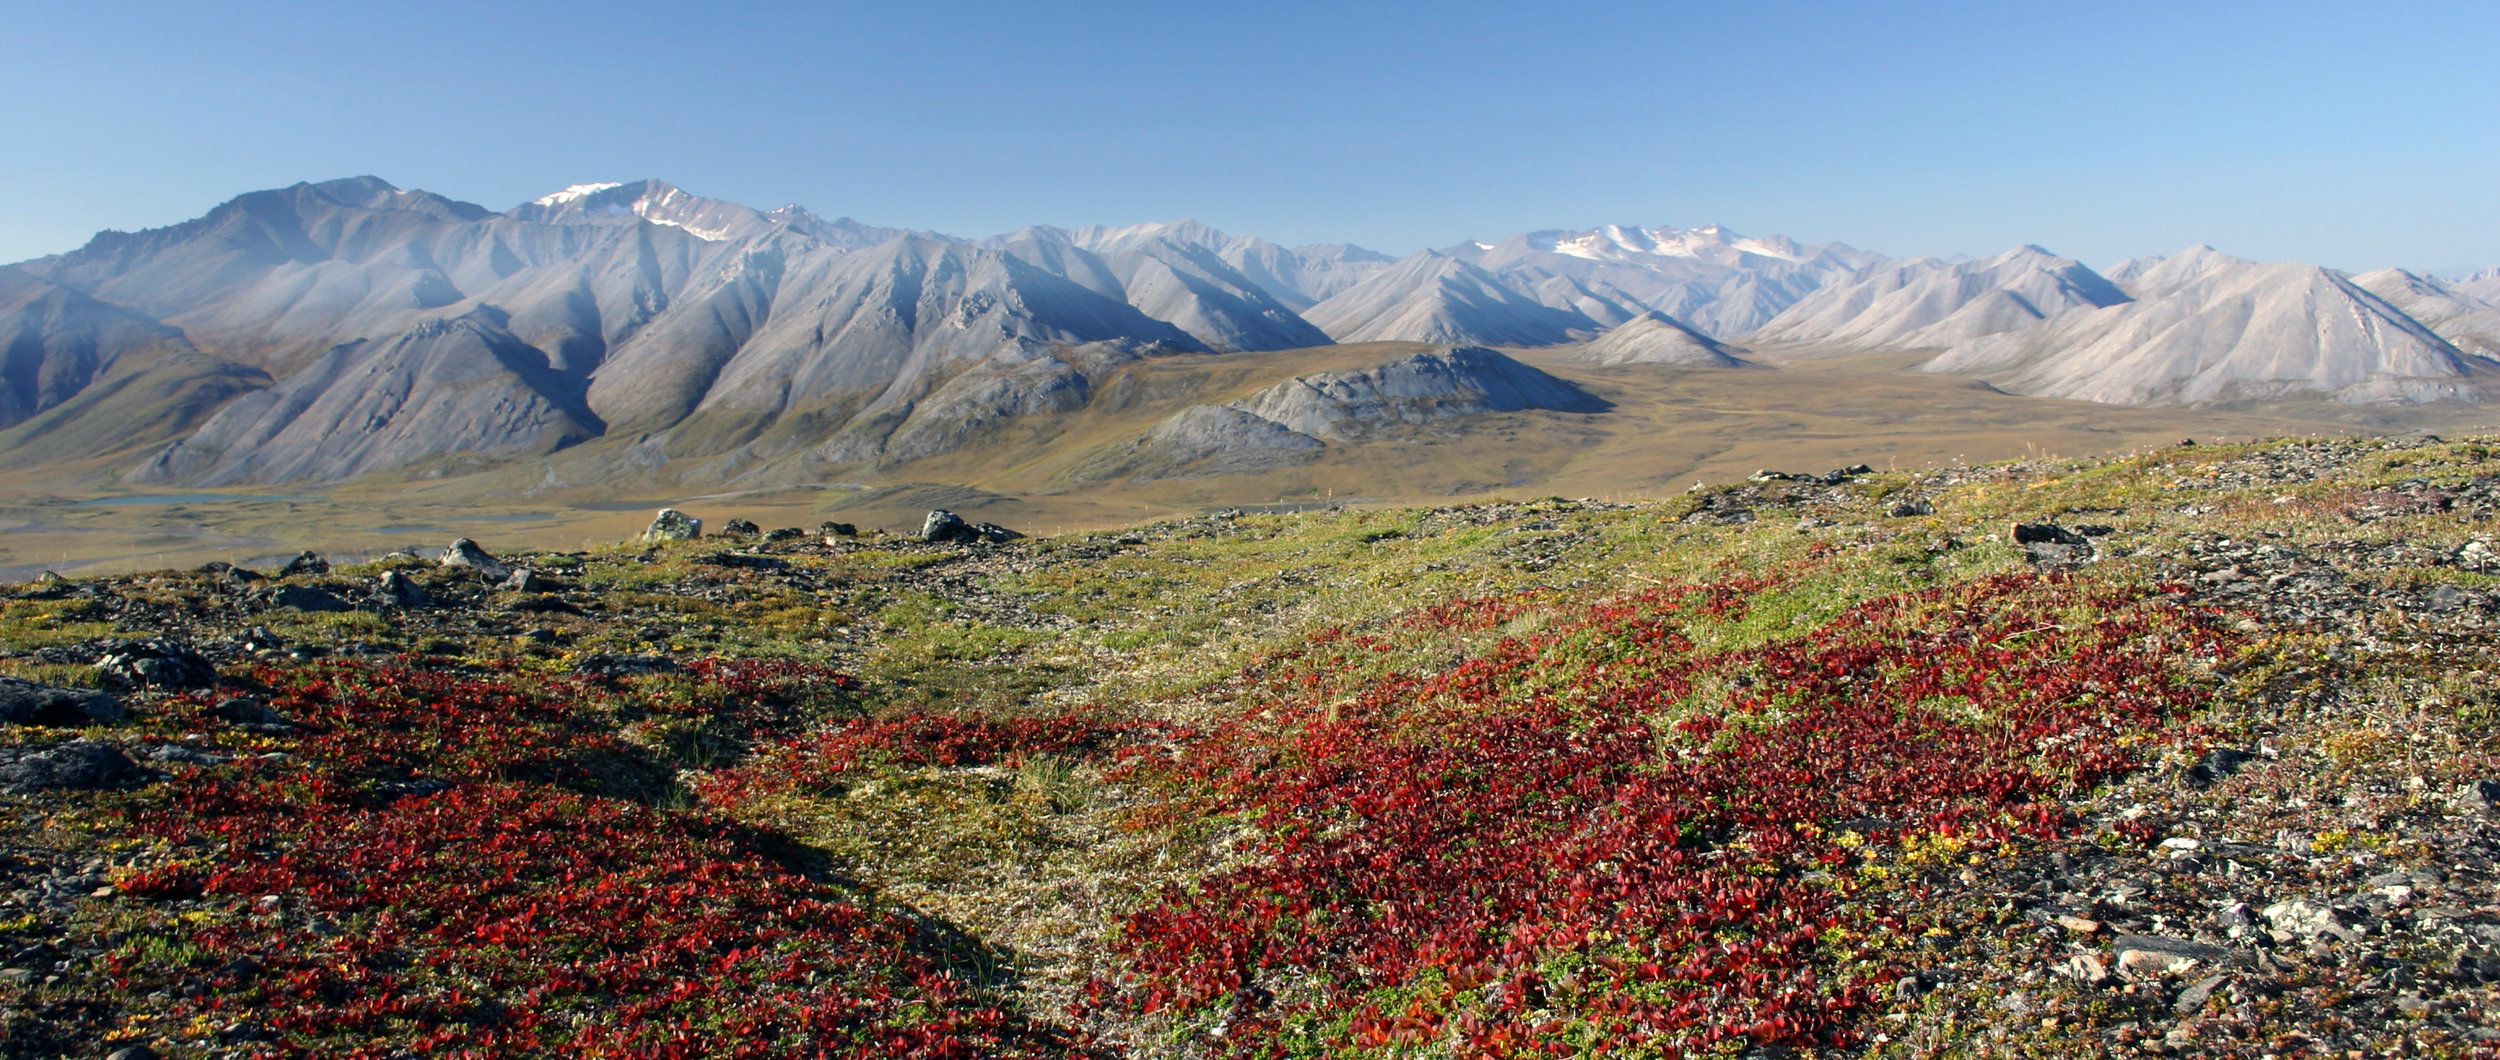 More than breathtaking scenery. Dr. Matthew Wallenstein is studying the relationship between plant growth, Arctic soil microbes, and carbon sequestration in Alaska's Brooks Range. All photos: Matthew Wallenstein